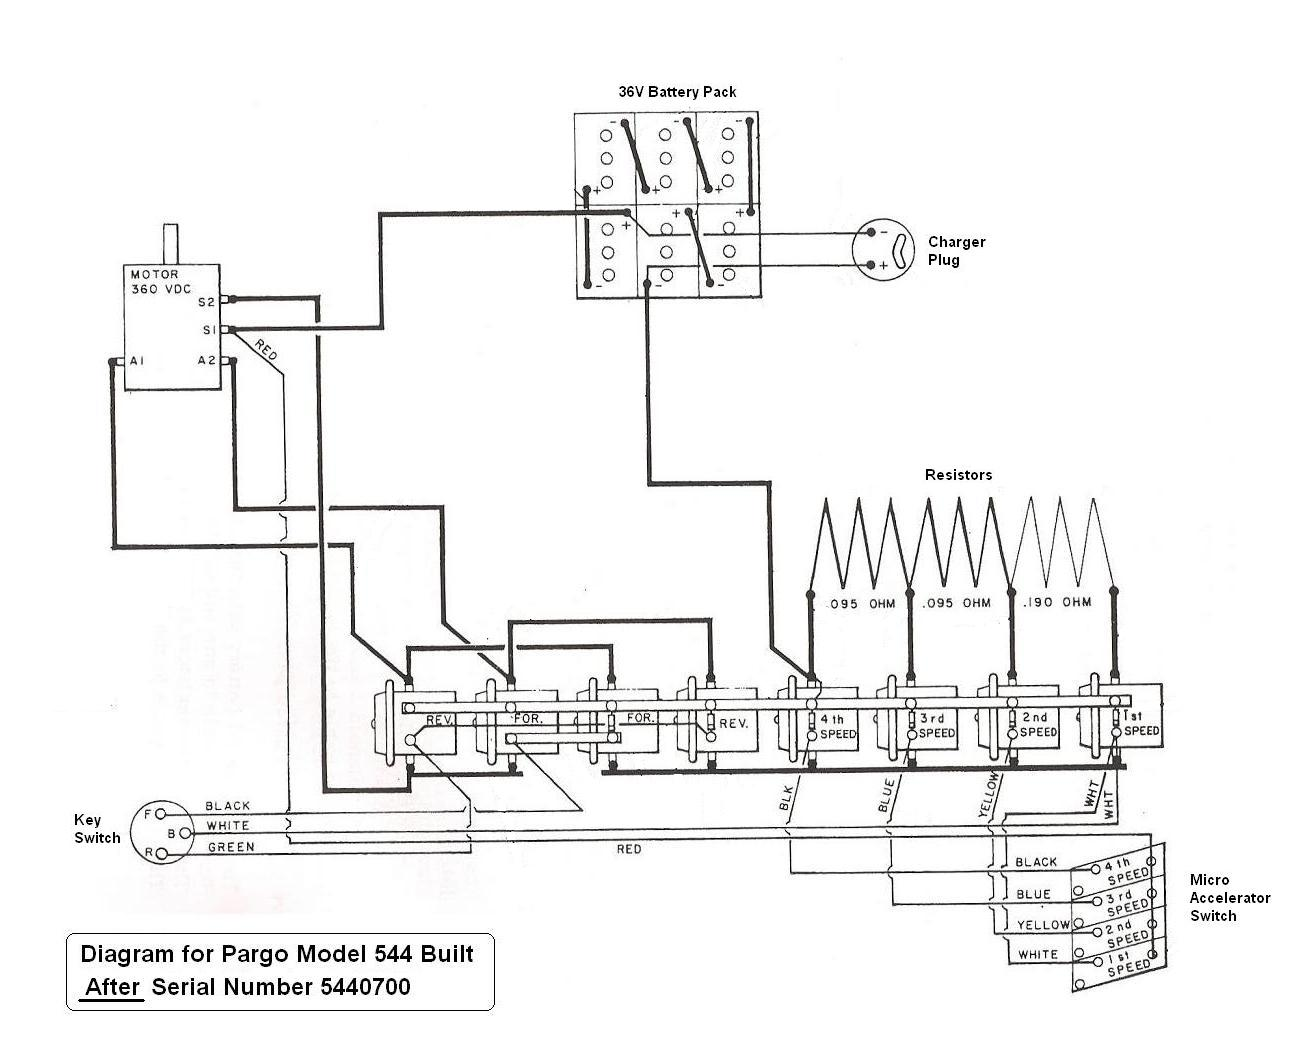 36 Volt Melex Wiring Diagram Battery Electrical Work Wiring Diagram \u2022  Ezgo Battery Indicator Wiring-Diagram 36 Volt Melex Wiring Diagram